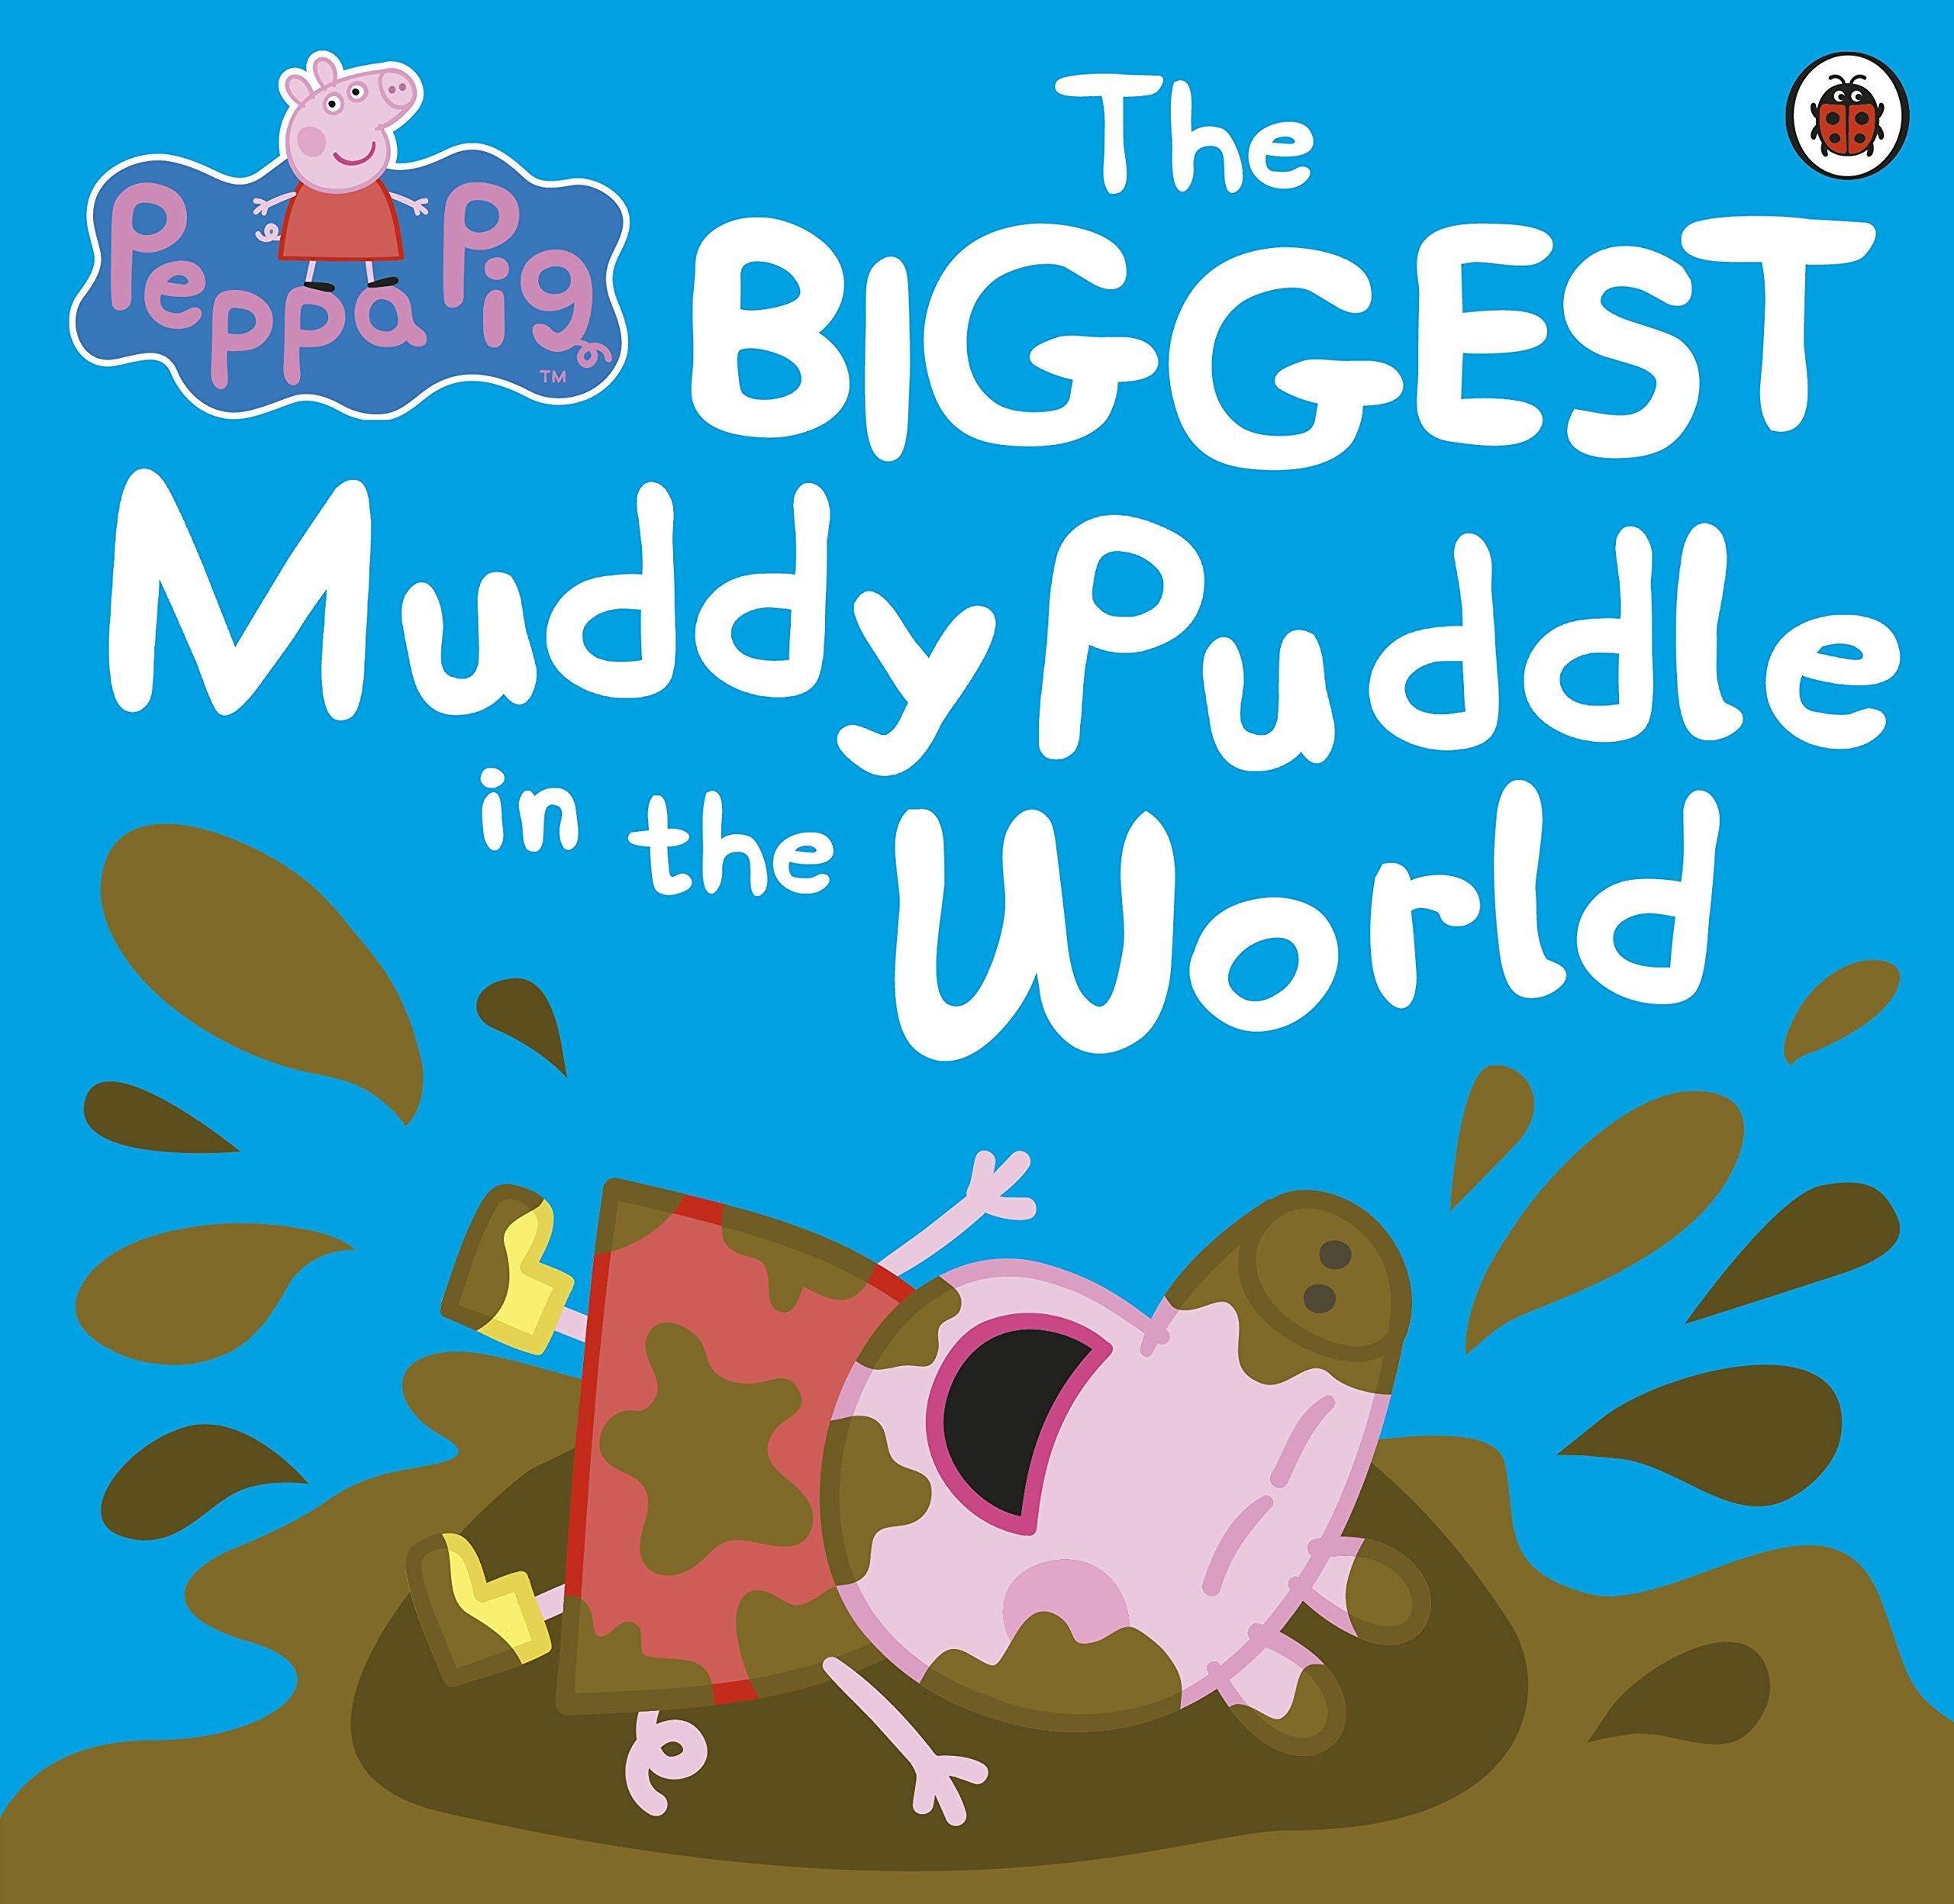 jumping in muddy puddles peppa